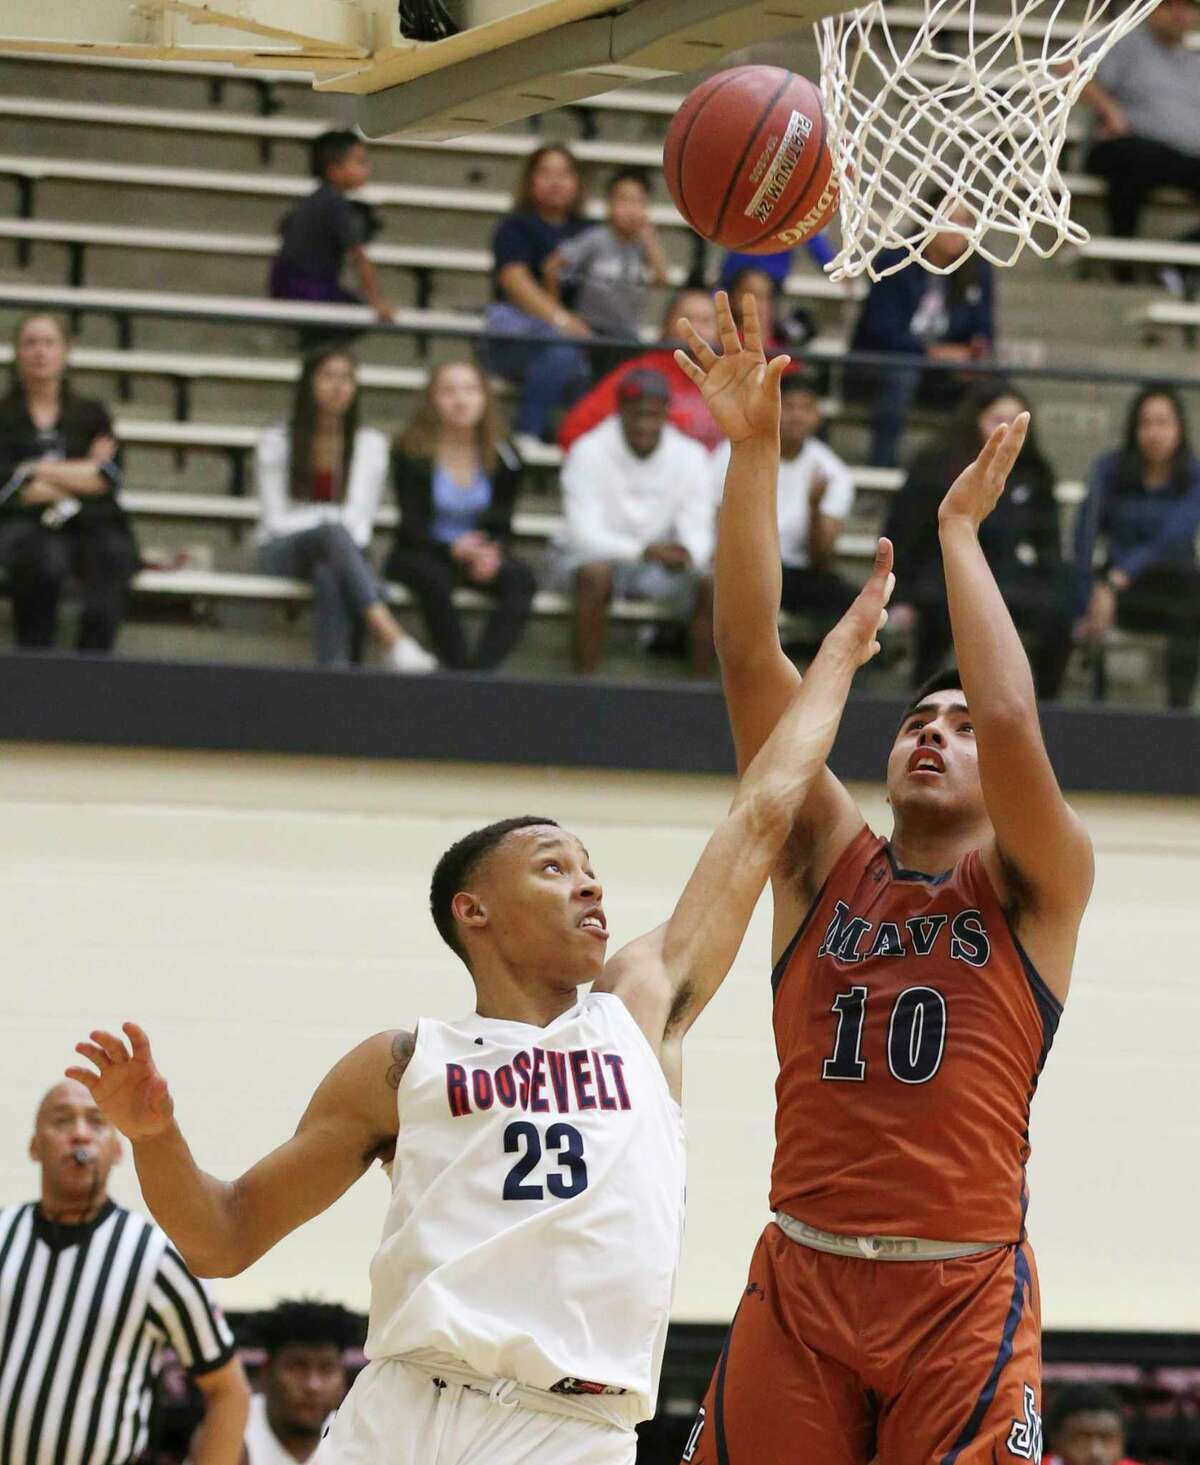 Madison's Ayden Zavala (10) puts up a shot against Roosevelt's Vincent Finch-Mann (23) during their basketball game at Littleton Gym on Wednesday, Jan. 8, 2020. The Roughriders defeated the Mavericks, 52-48.